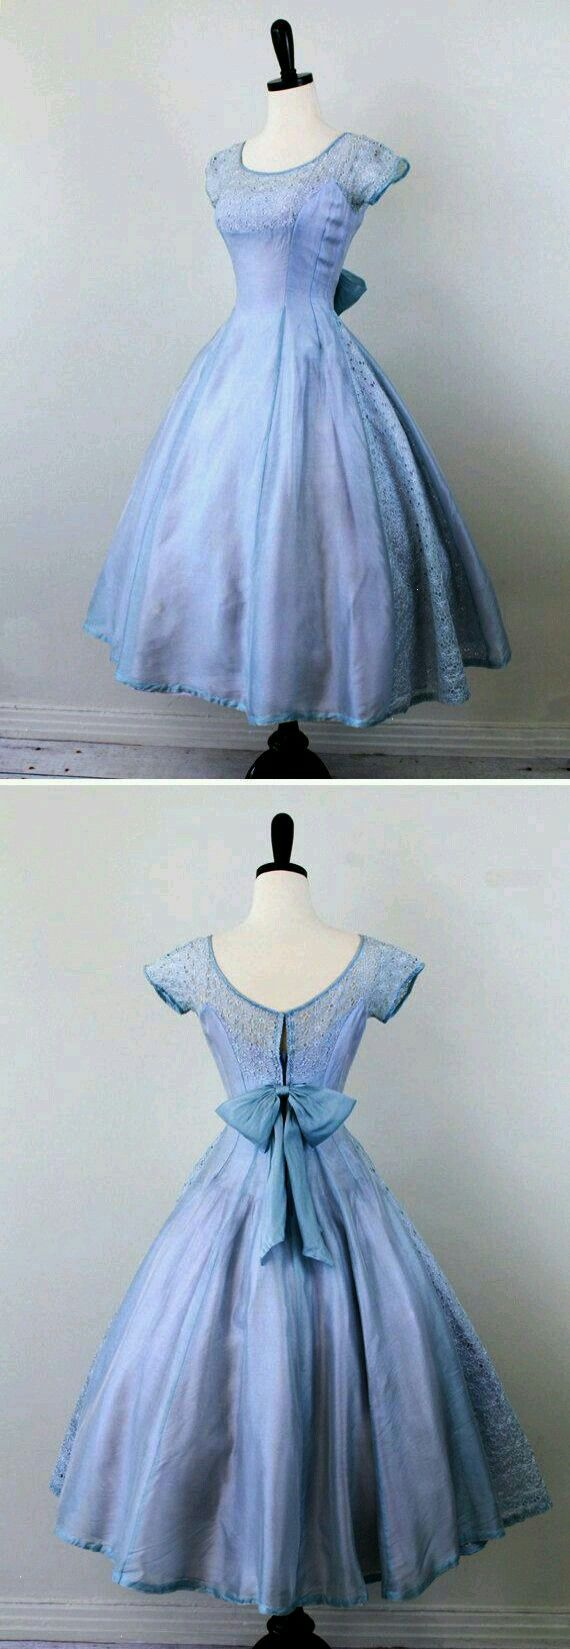 Pin by Angie Hartman on Moda Vintage dresses, Vintage